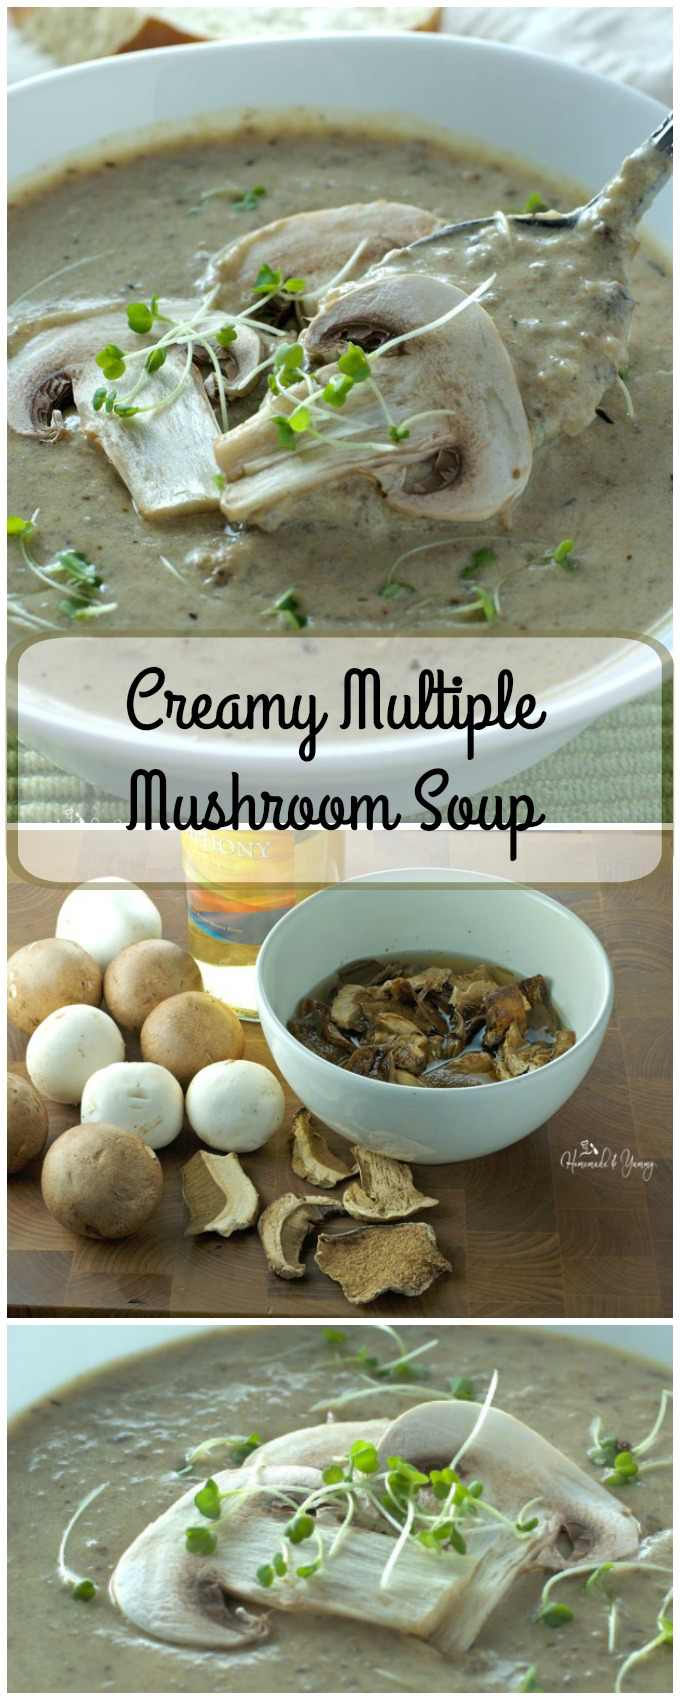 Fresh and dried mushrooms are used to make this Creamy Multiple Mushroom Soup. Thick, rich and earthy, perfect as an appetizer or main dish paired with some great bread. | homemadeandyummy.com